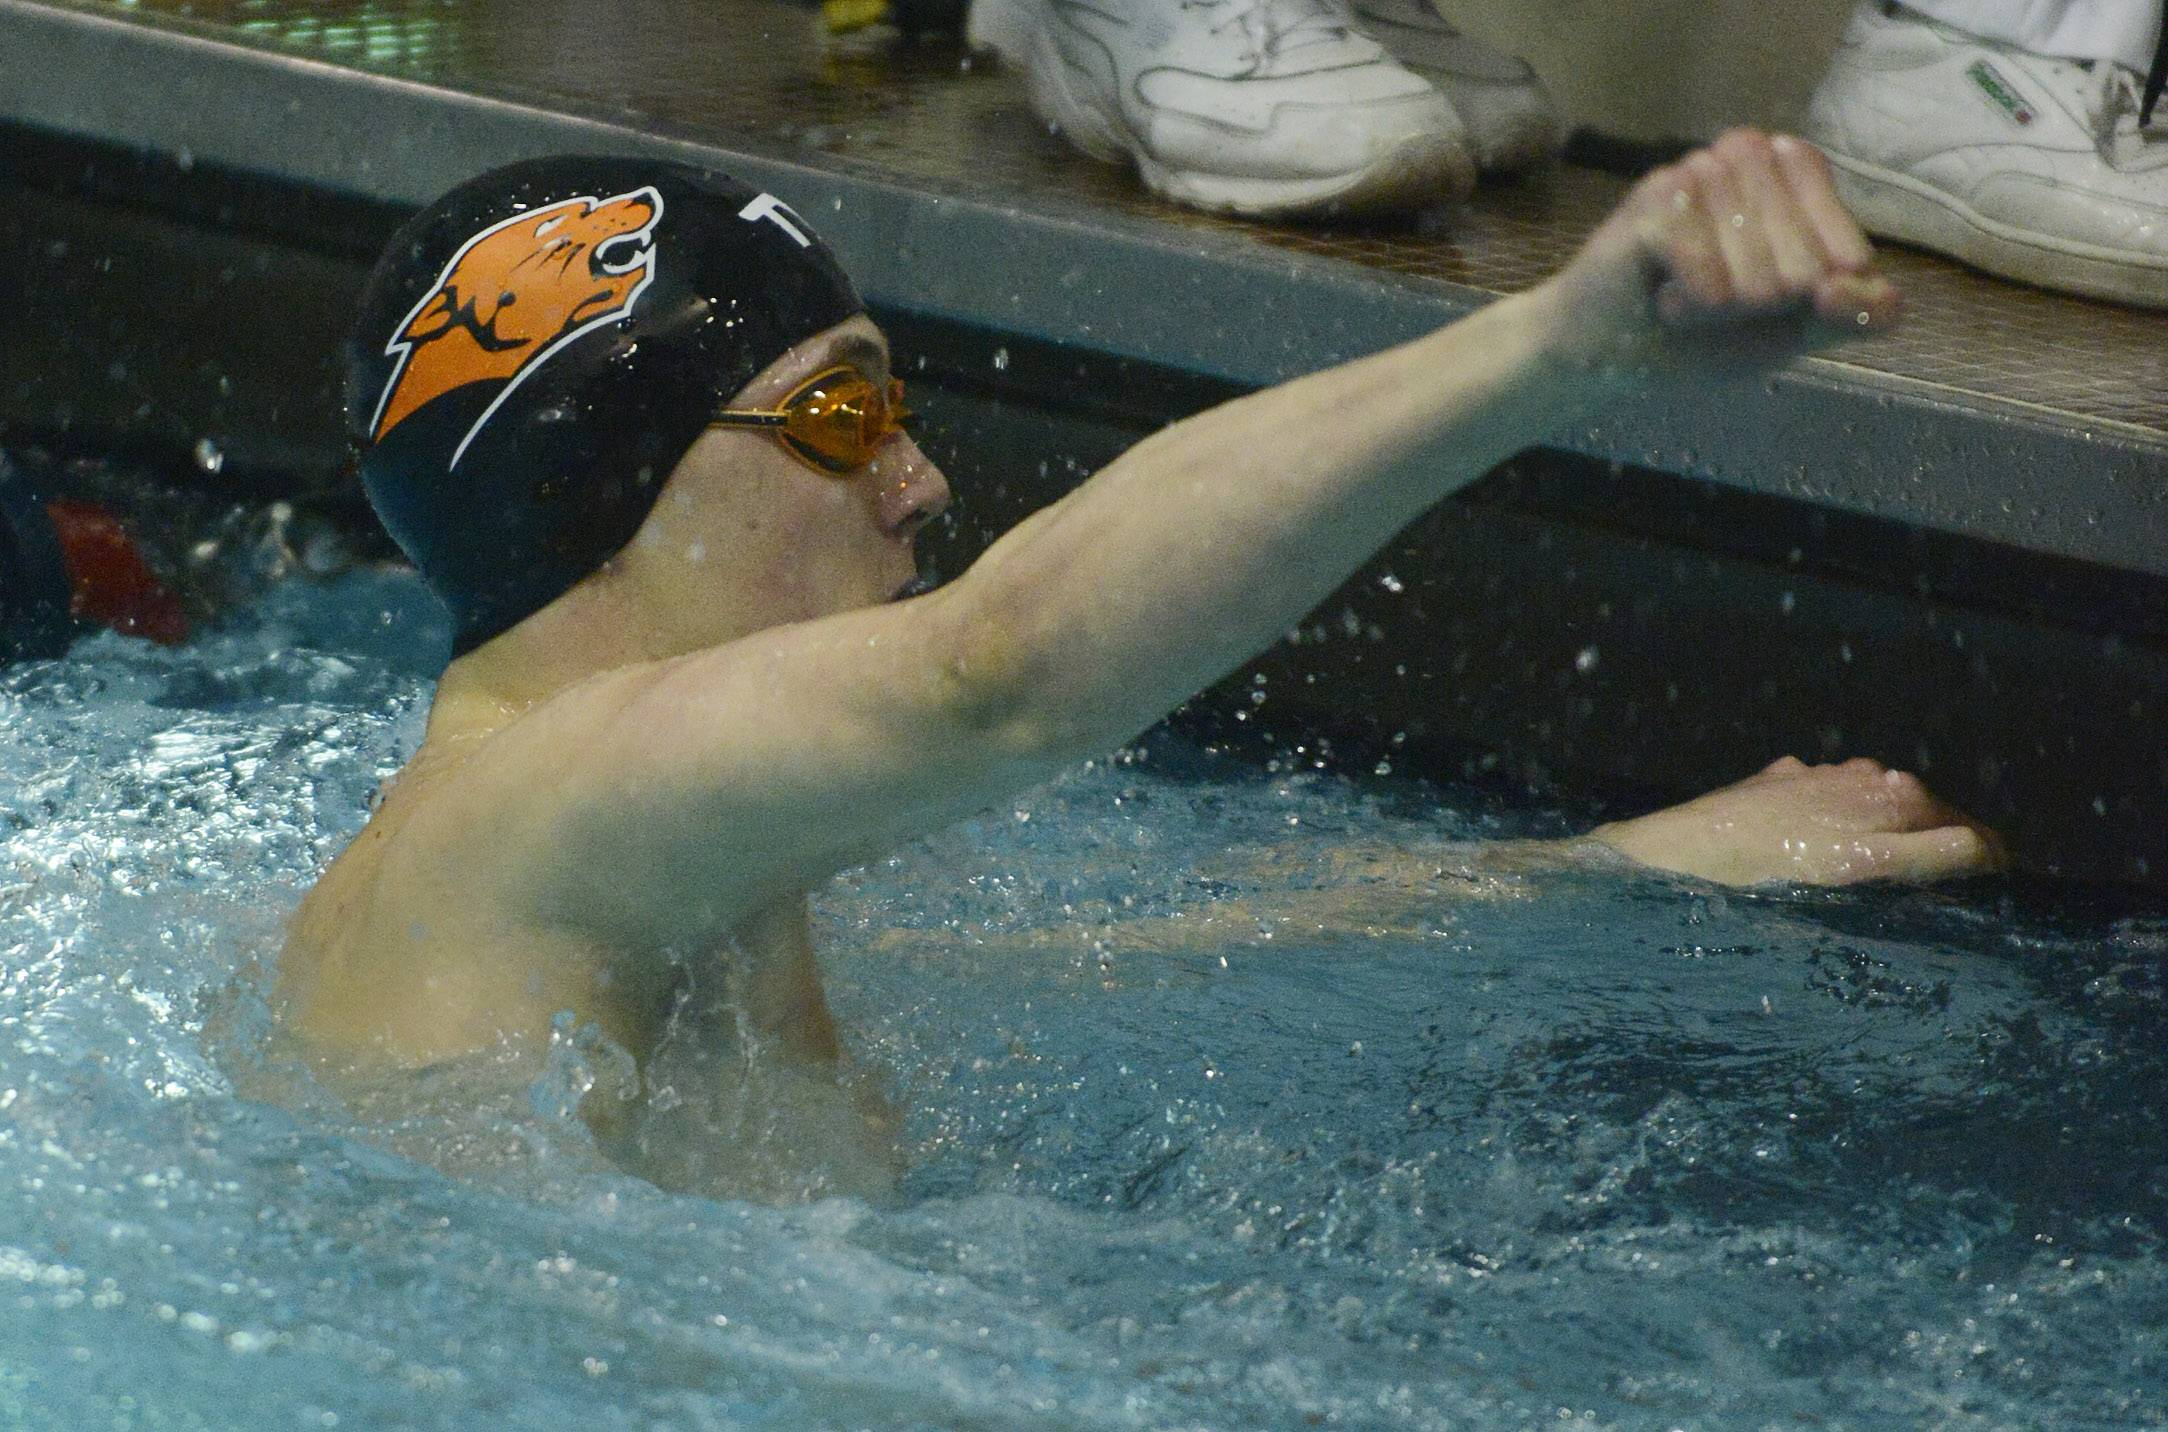 Justin Fu, Libertyville's anchor in the 200-yard medley relay, pumps his fist after his team's record-setting finish during the boys state swimming meet at Evanston High School Saturday.